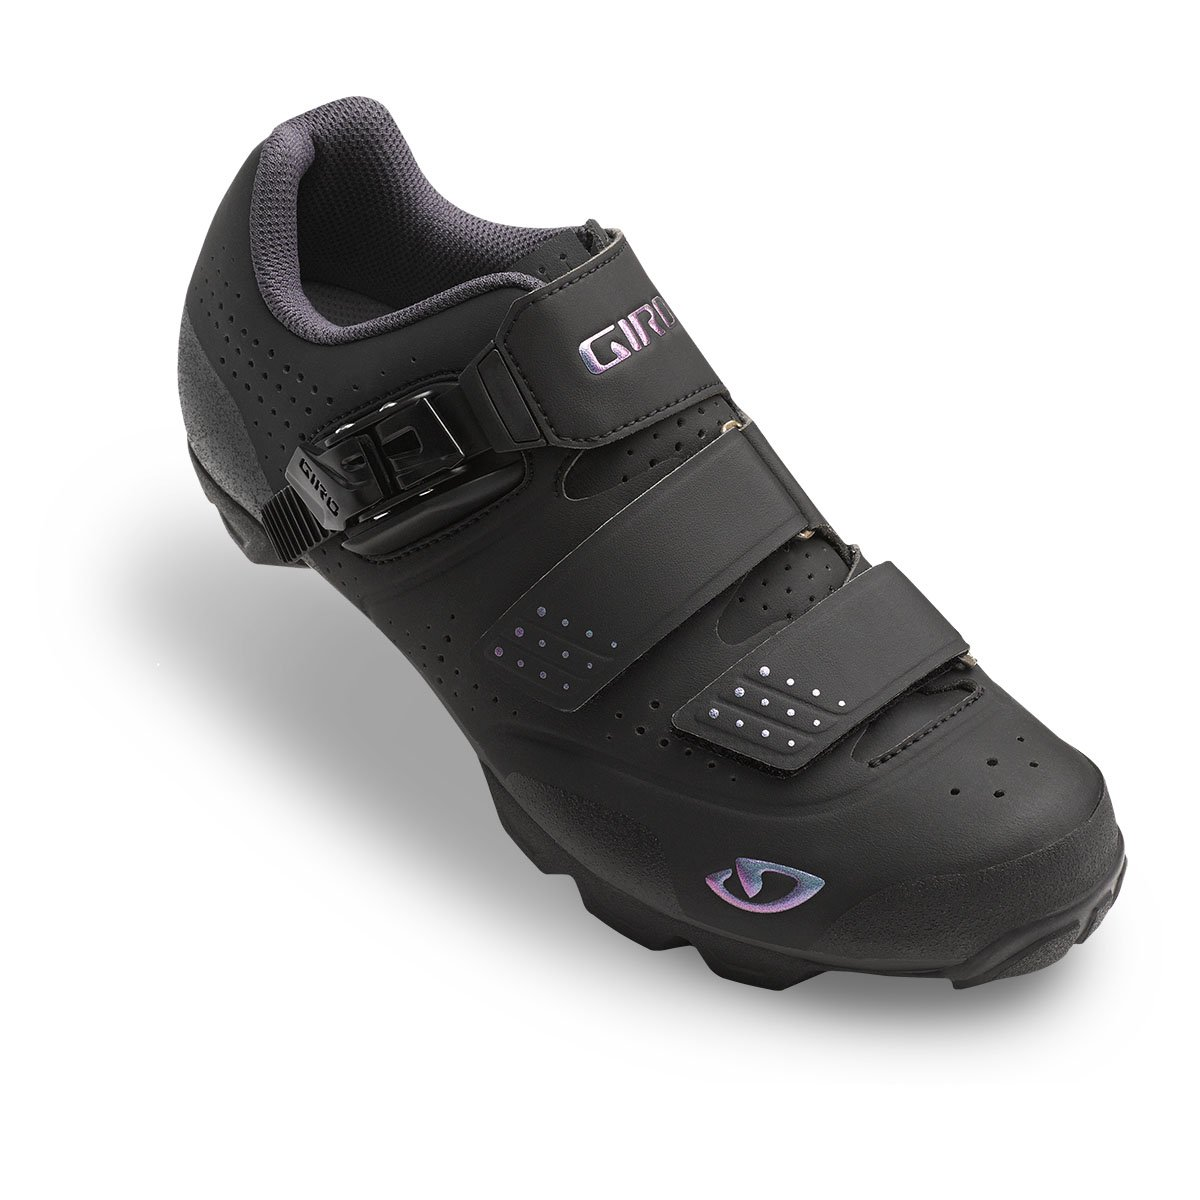 Giro Manta R Cycling Shoes - Women's B015T78R76 37.5|Black